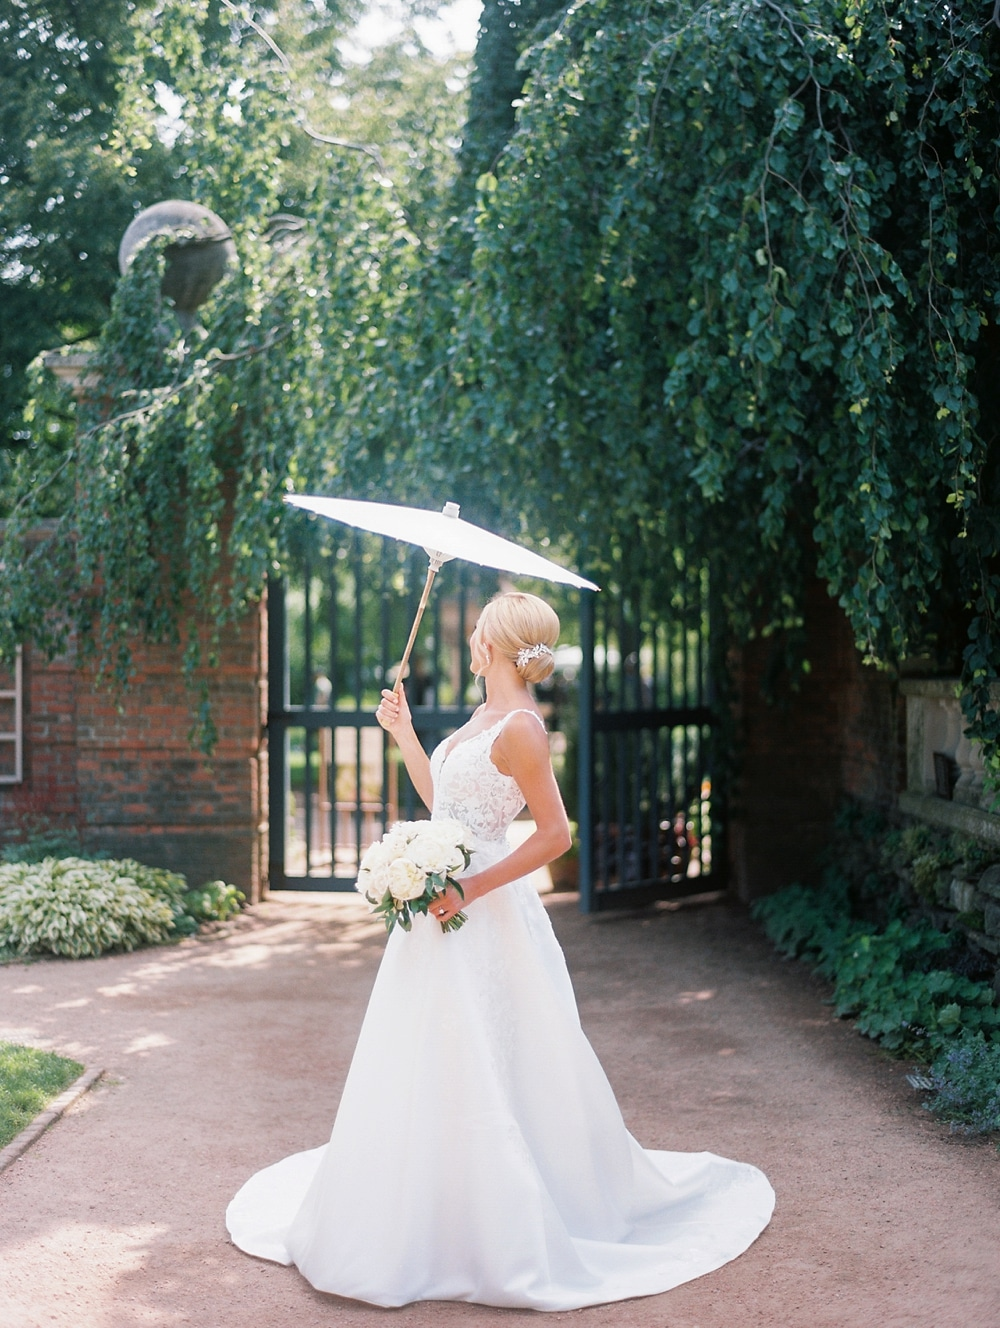 Kristin-La-Voie-Photography-chicago-botanic-garden-wedding-photos-7